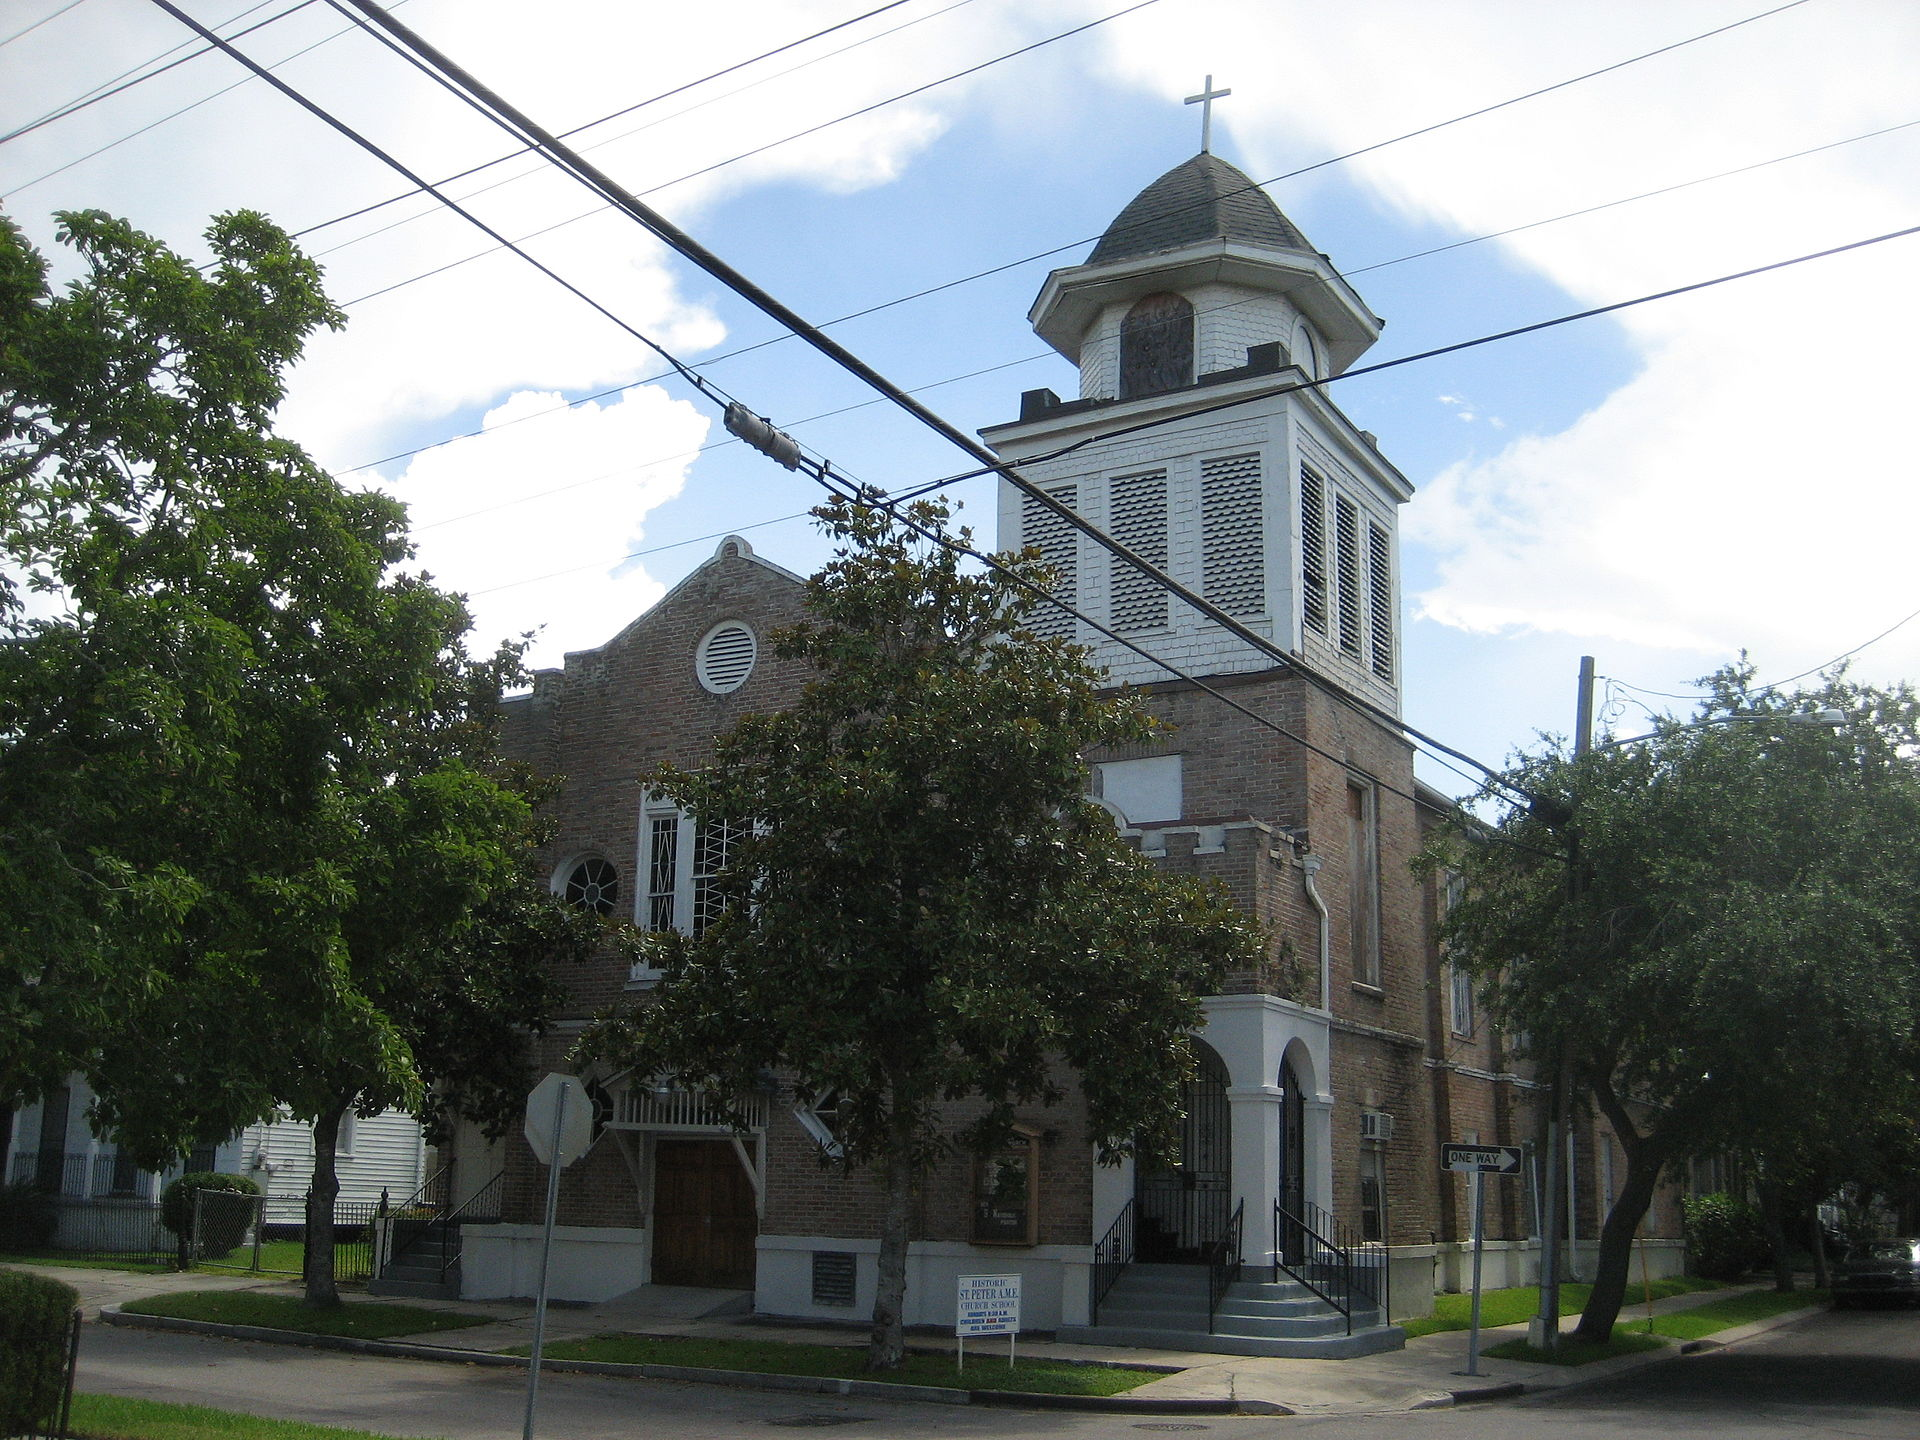 St. Peter A.M.E. Church was originally built in 1858 and is one of the oldest black churches in the city.